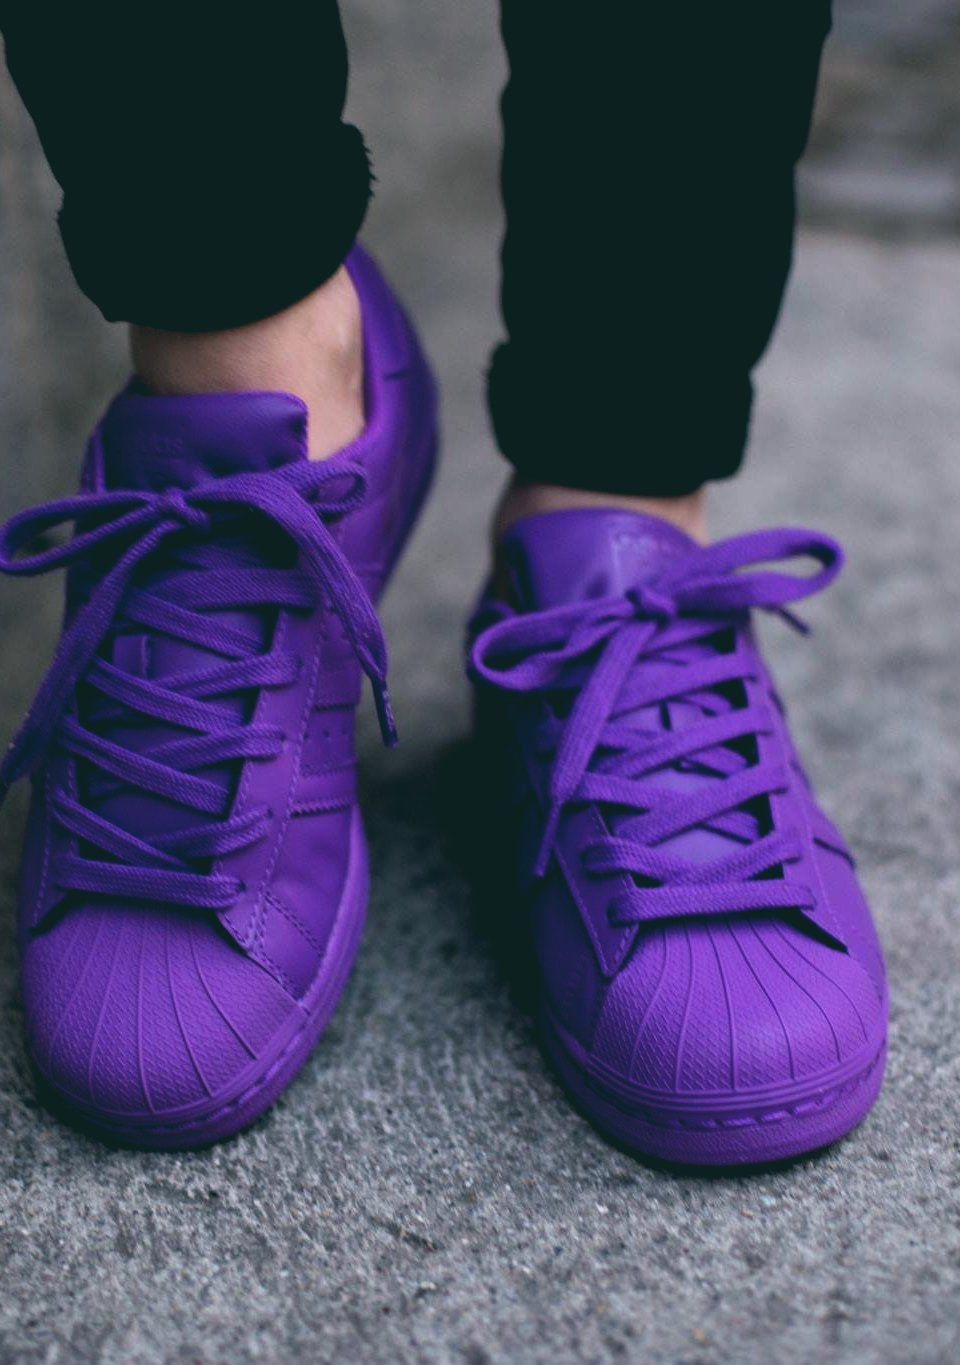 low priced b6cdf f3f1c pies de mujer con tenis adidas superstar morado